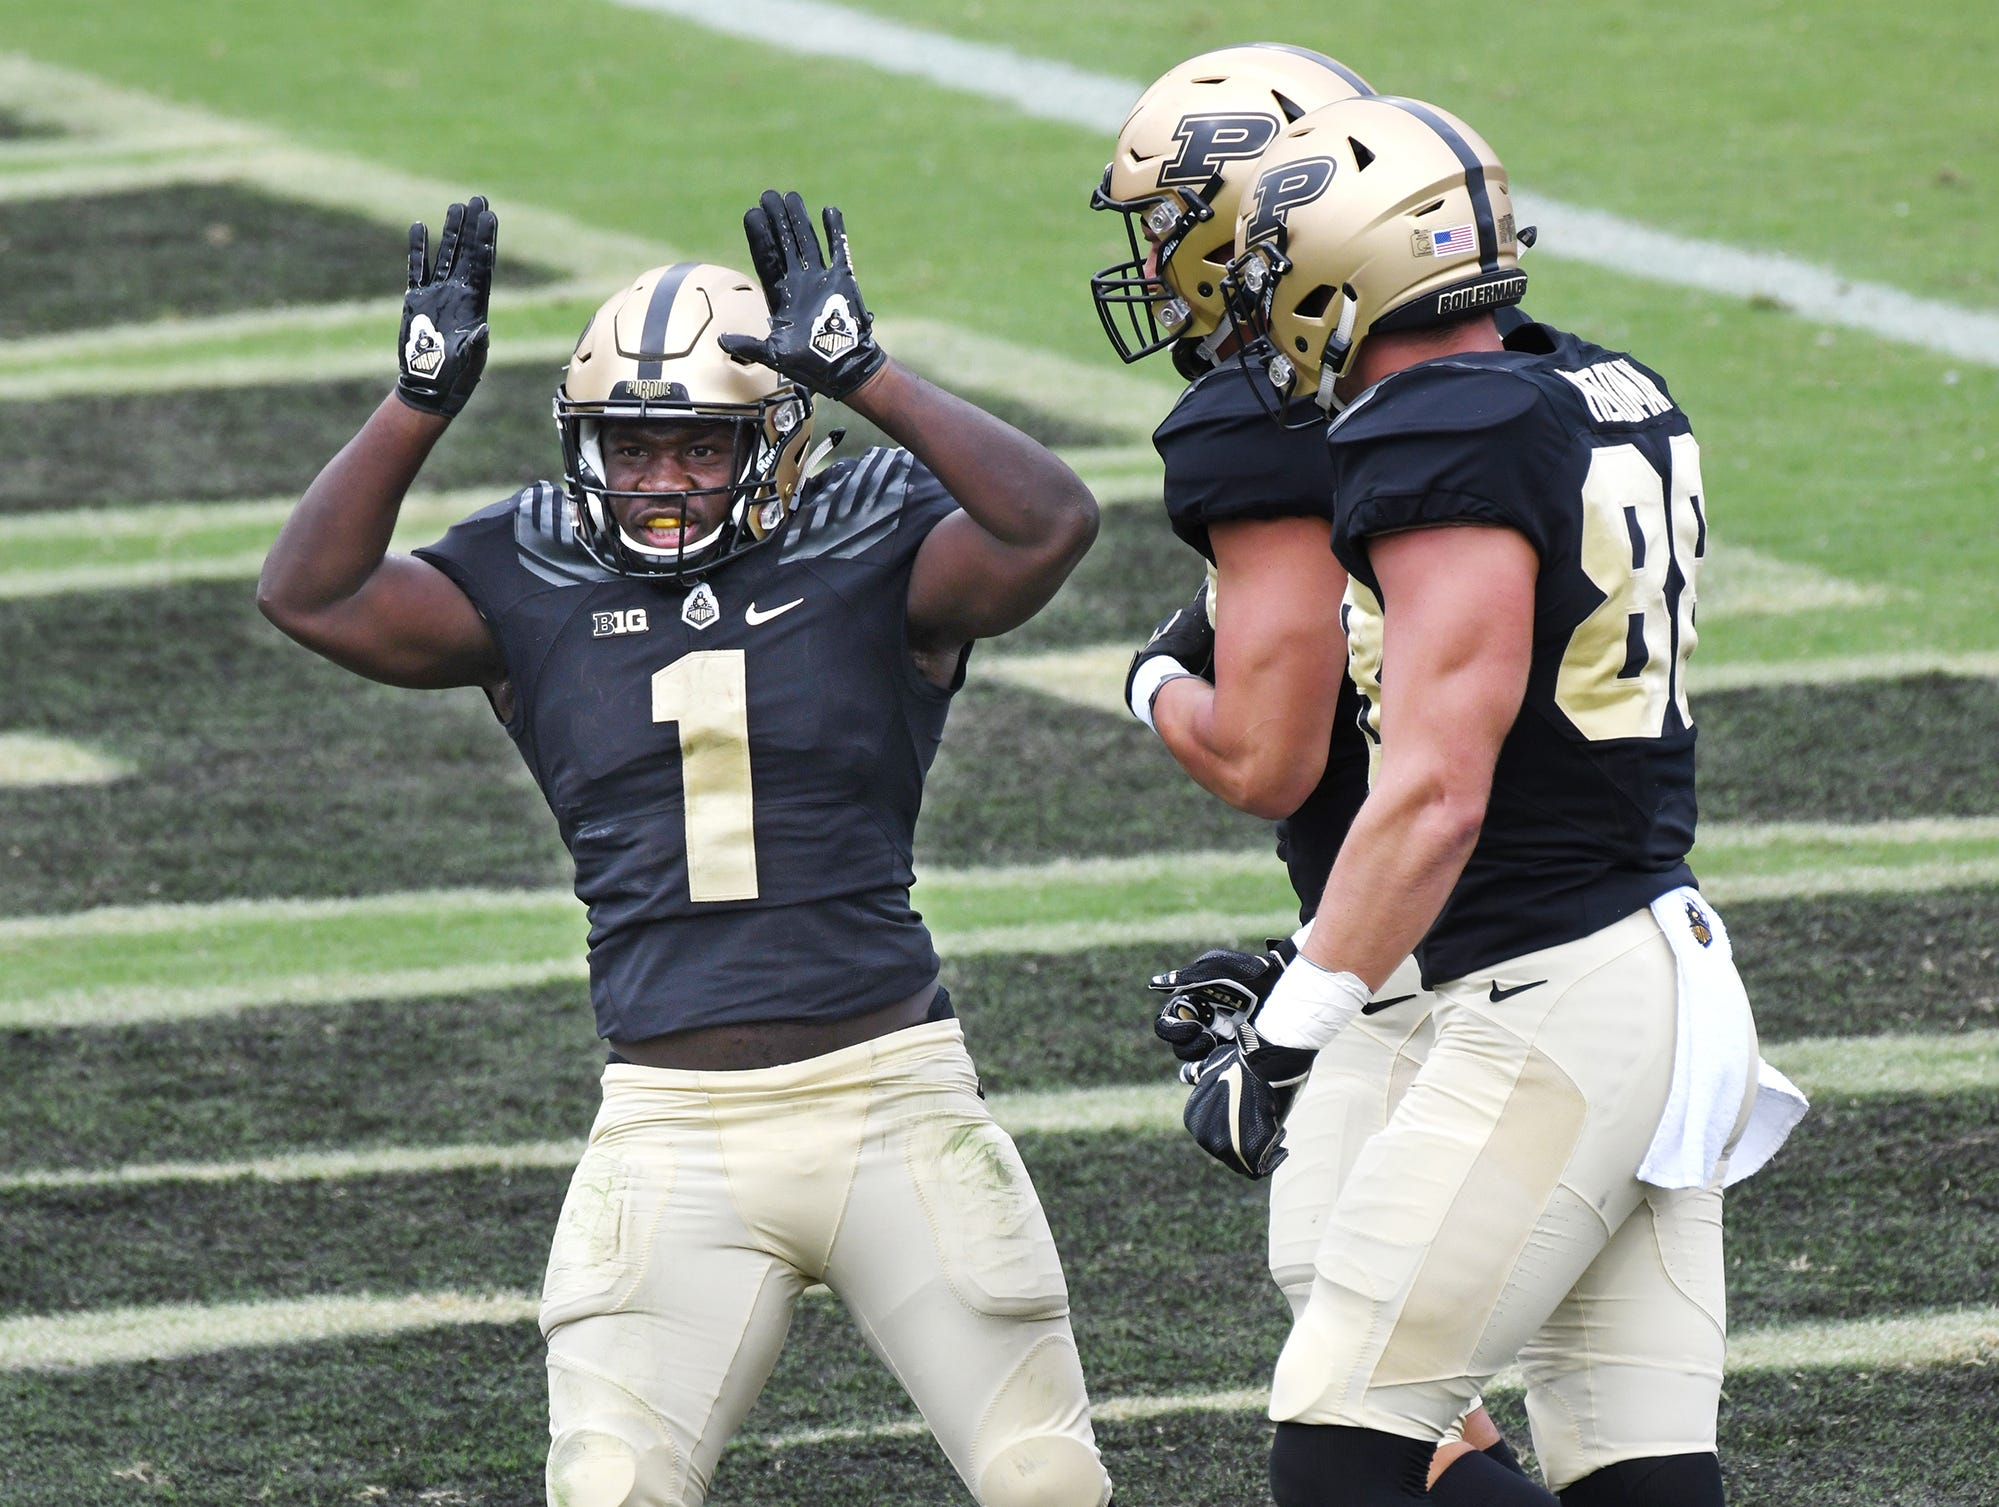 D. J. Knox of Purdue celebrates after his rushing touchdown in the first half against Boston College Saturday, September 22, 2018, in Ross-Ade Stadium.